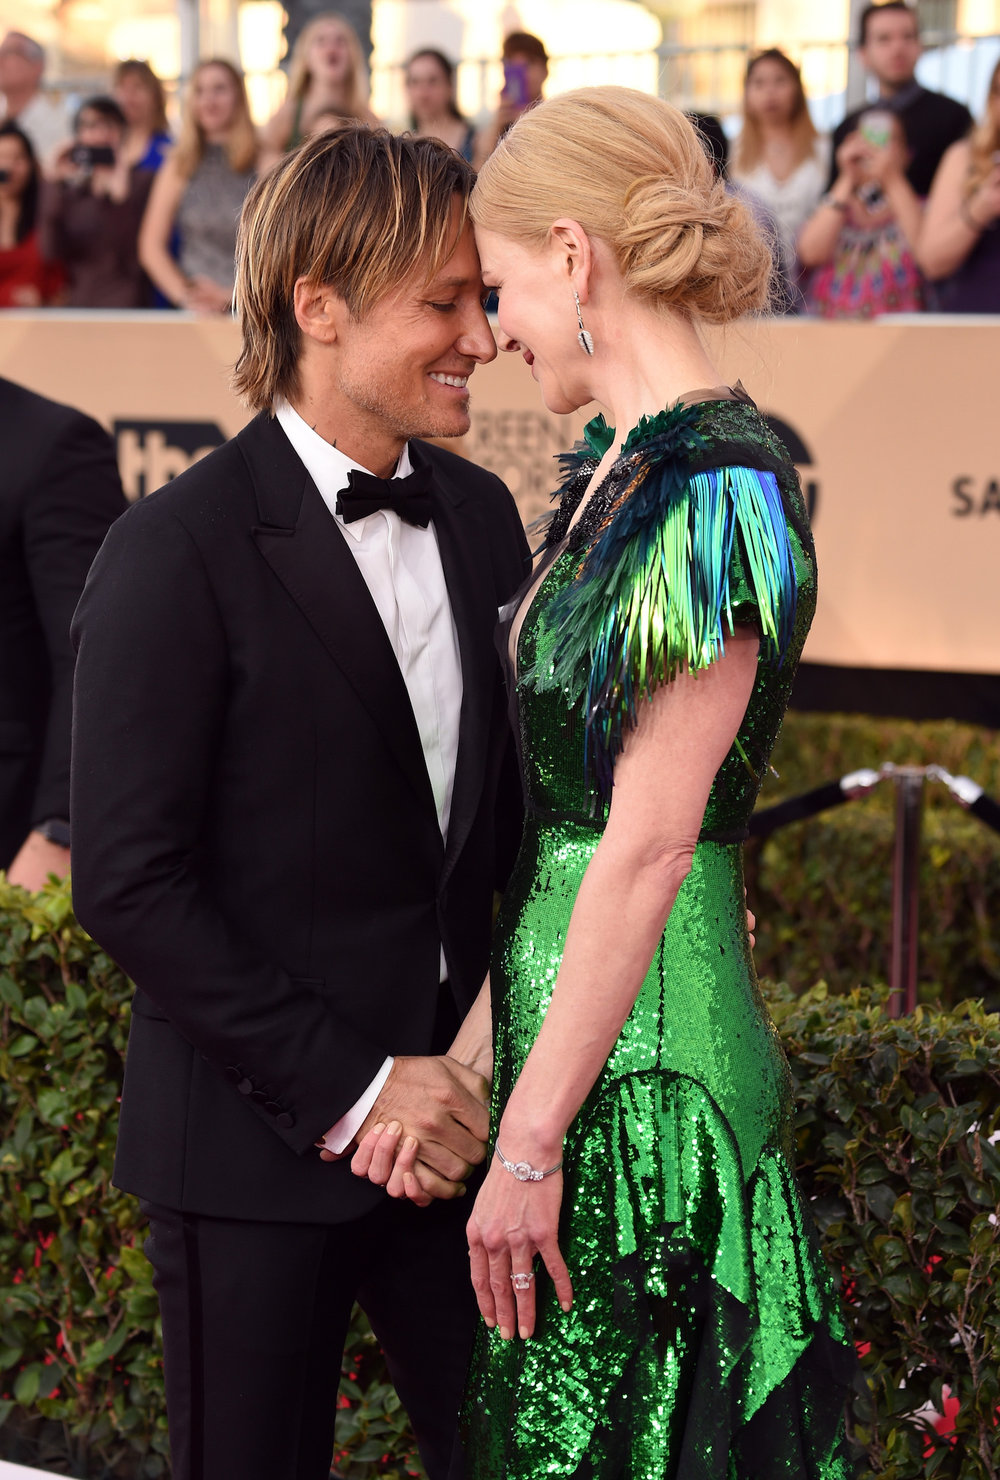 LOS ANGELES, CA - JANUARY 29:  Recording arrtist Keith Urban (L) and actor Nicole Kidman attends The 23rd Annual Screen Actors Guild Awards at The Shrine Auditorium on January 29, 2017 in Los Angeles, California. 26592_008  (Photo by Frazer Harrison/Getty Images) *** Local Caption *** Keith Urban;Nicole Kidman